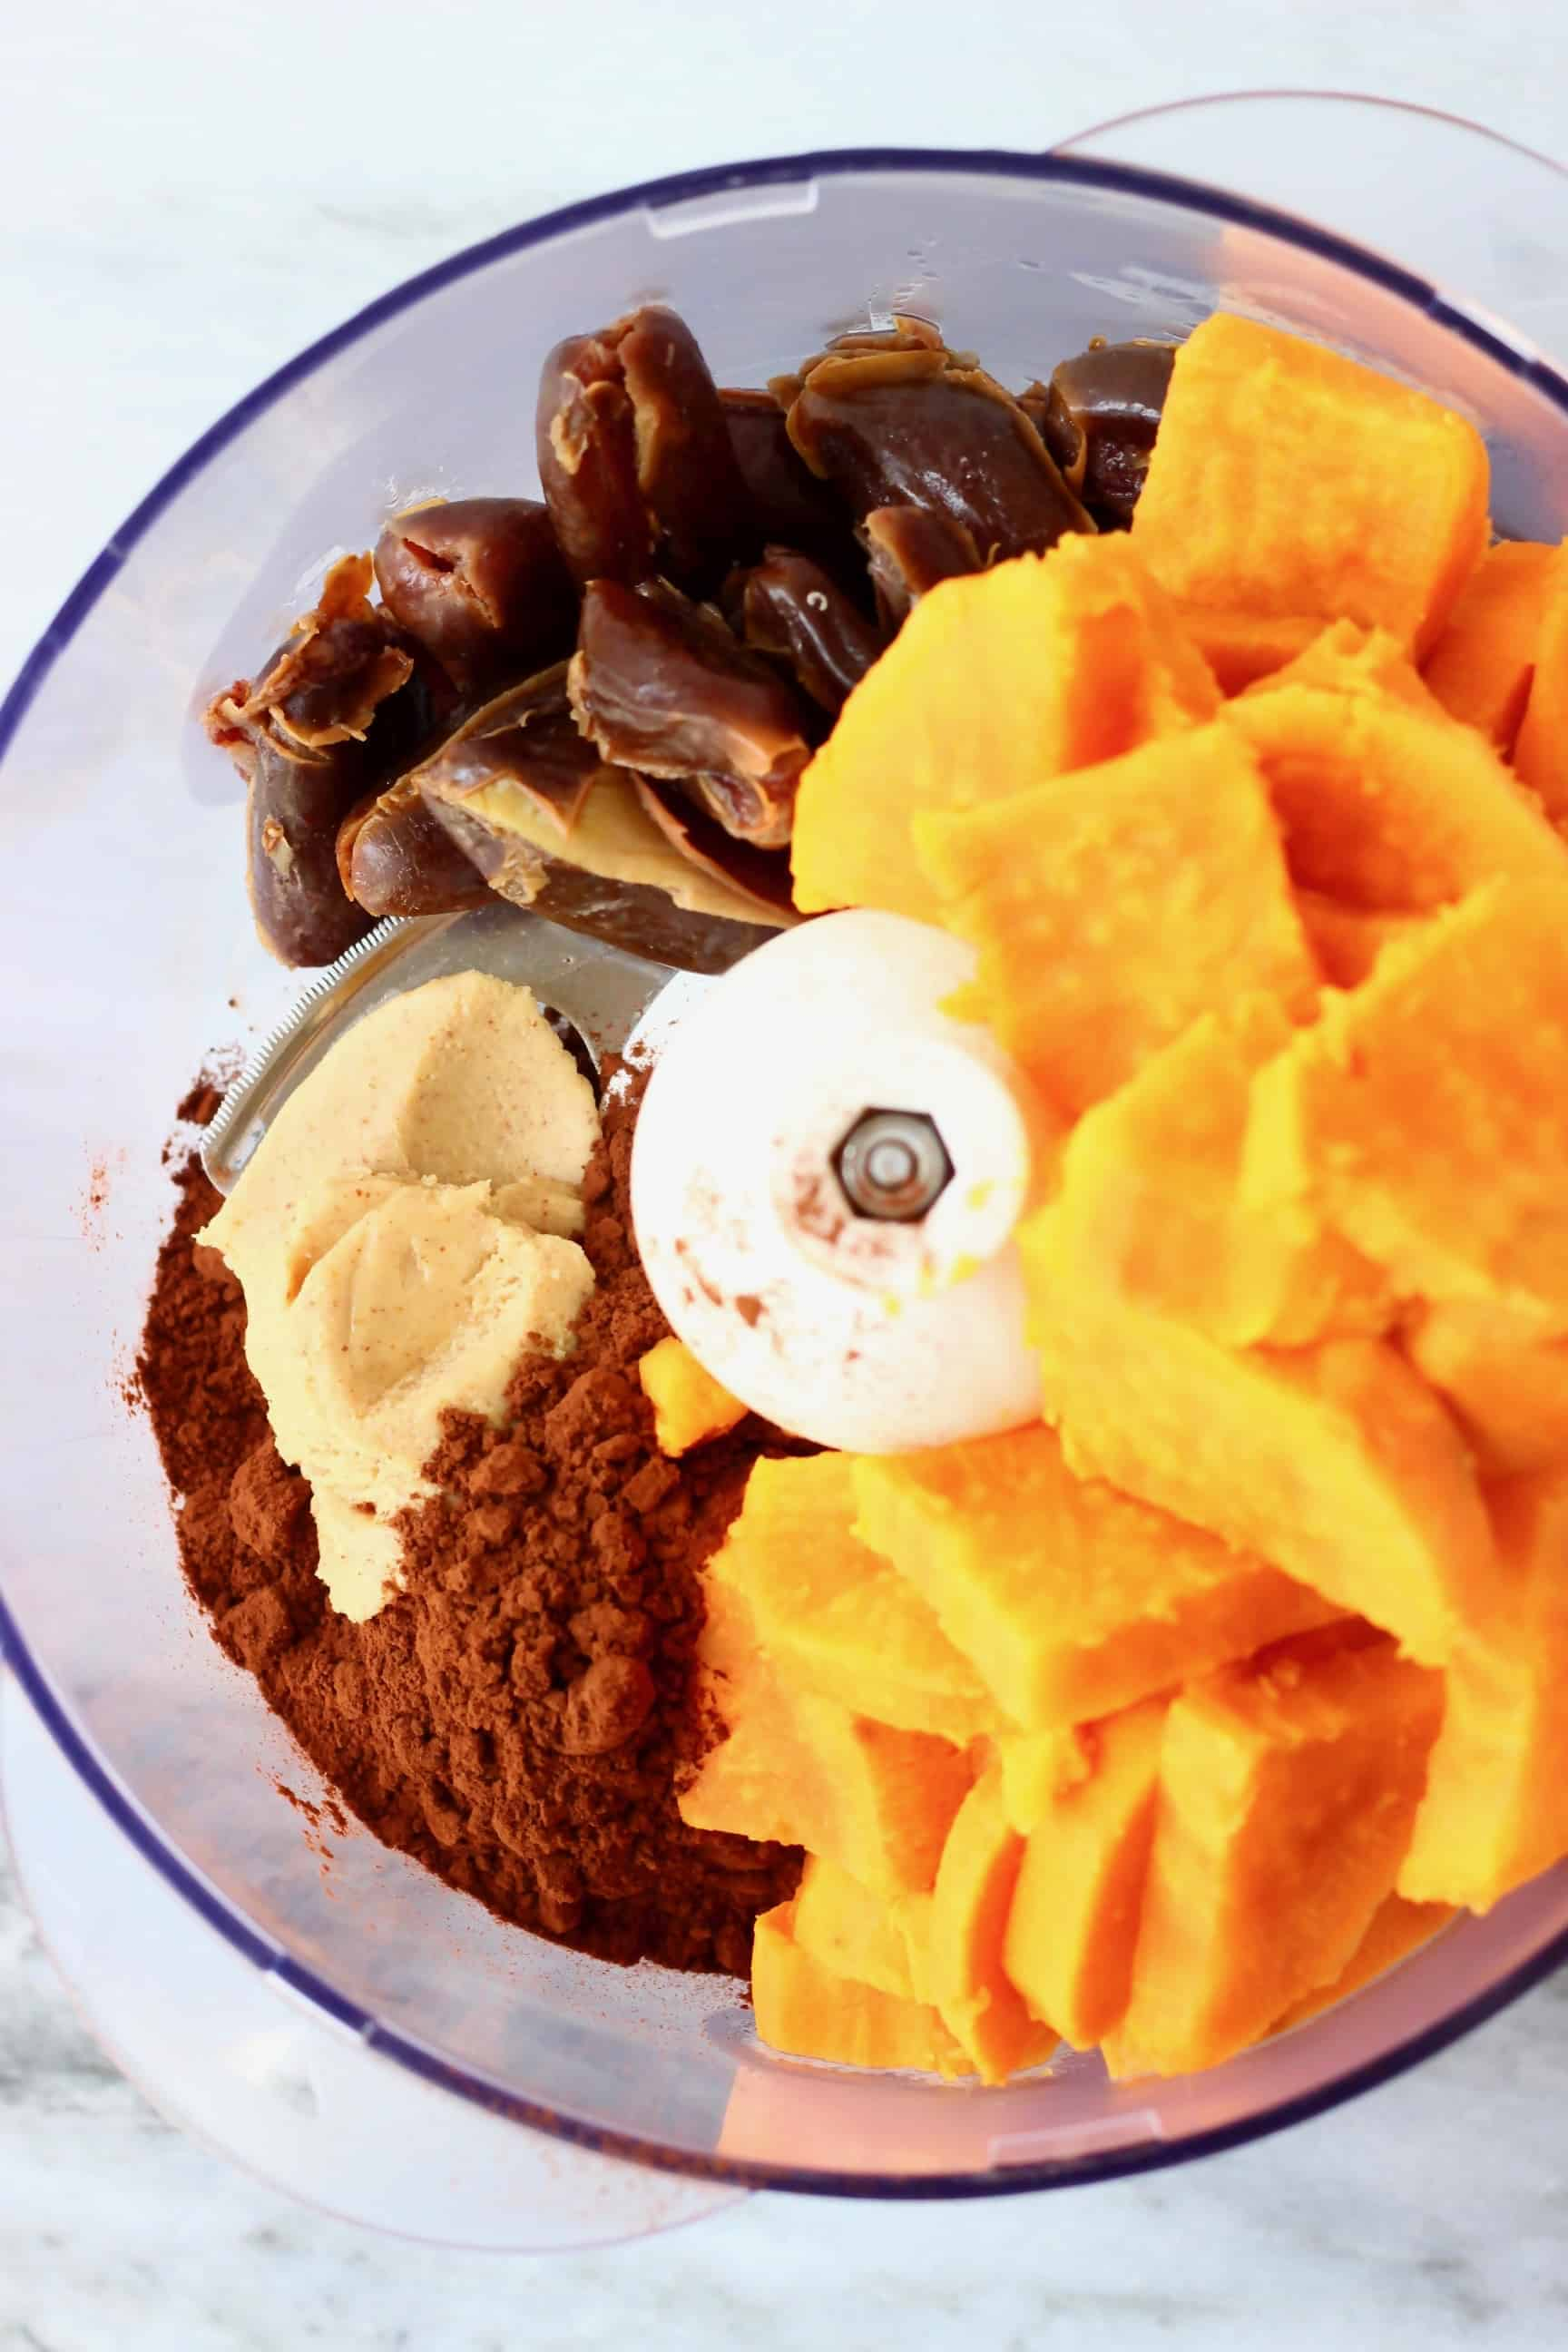 Cooked sweet potato, dates, peanut butter and cocoa powder in a food processor